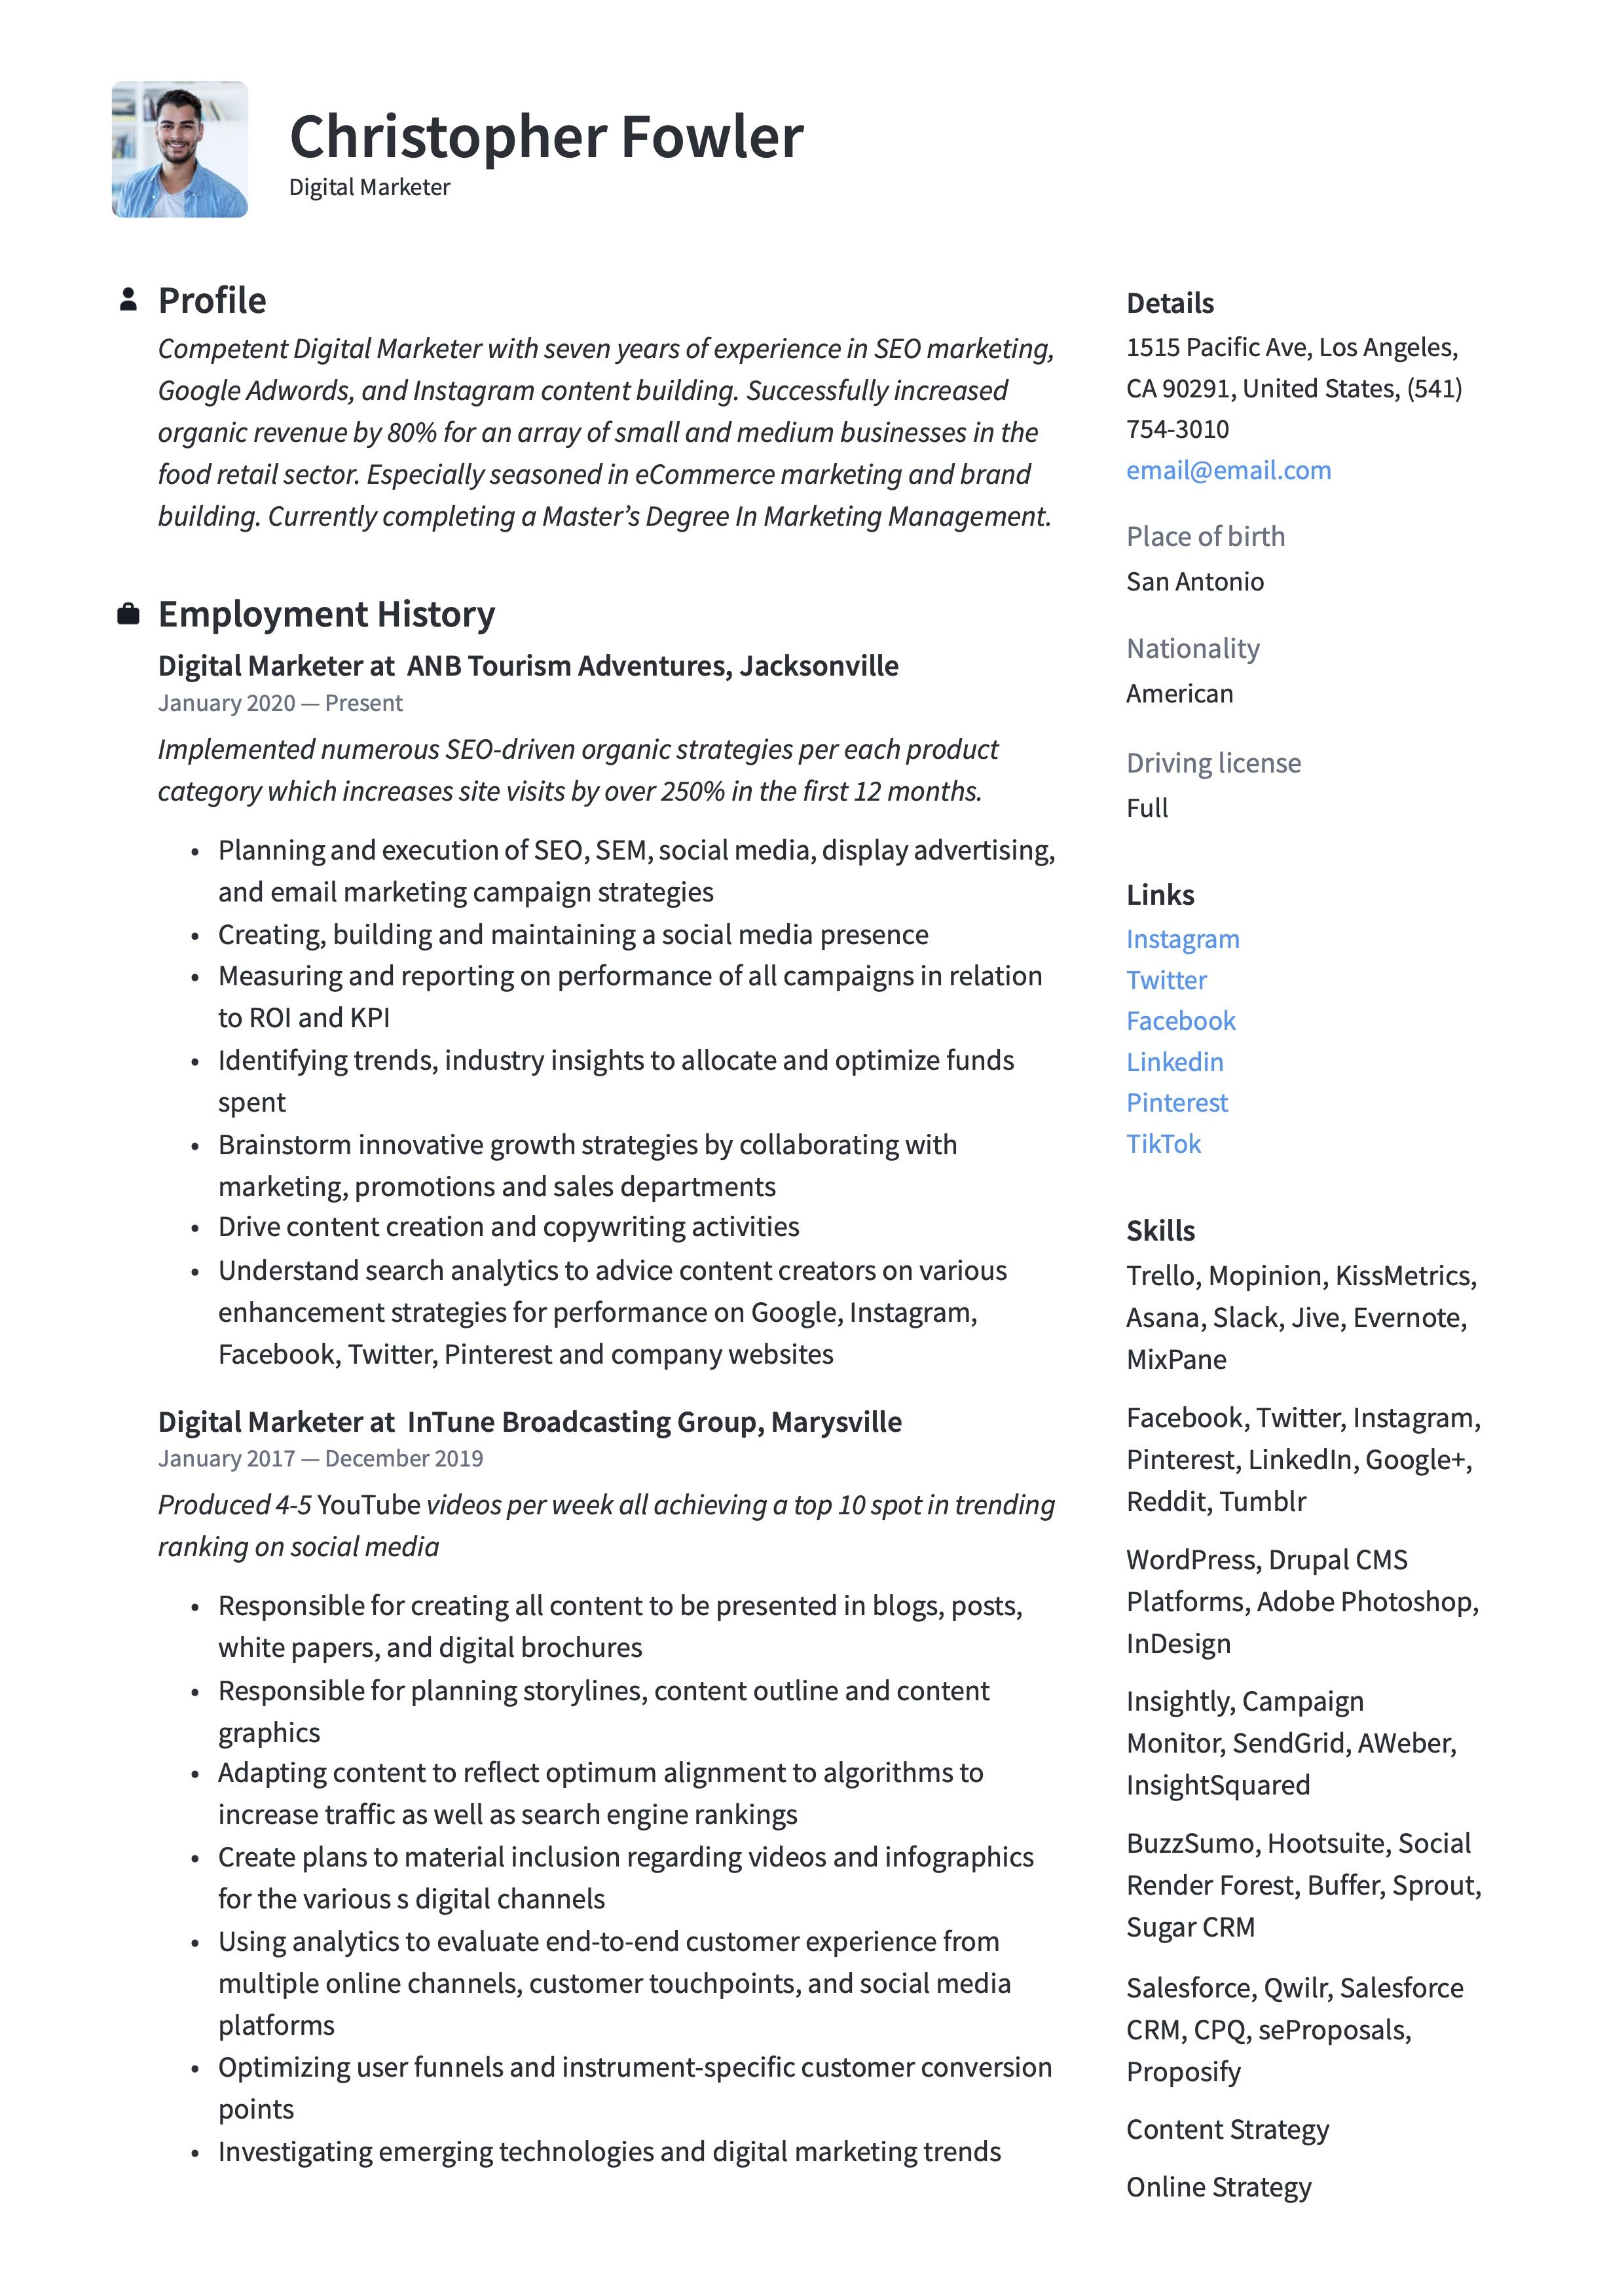 19 digital marketer resume examples guide in 2020